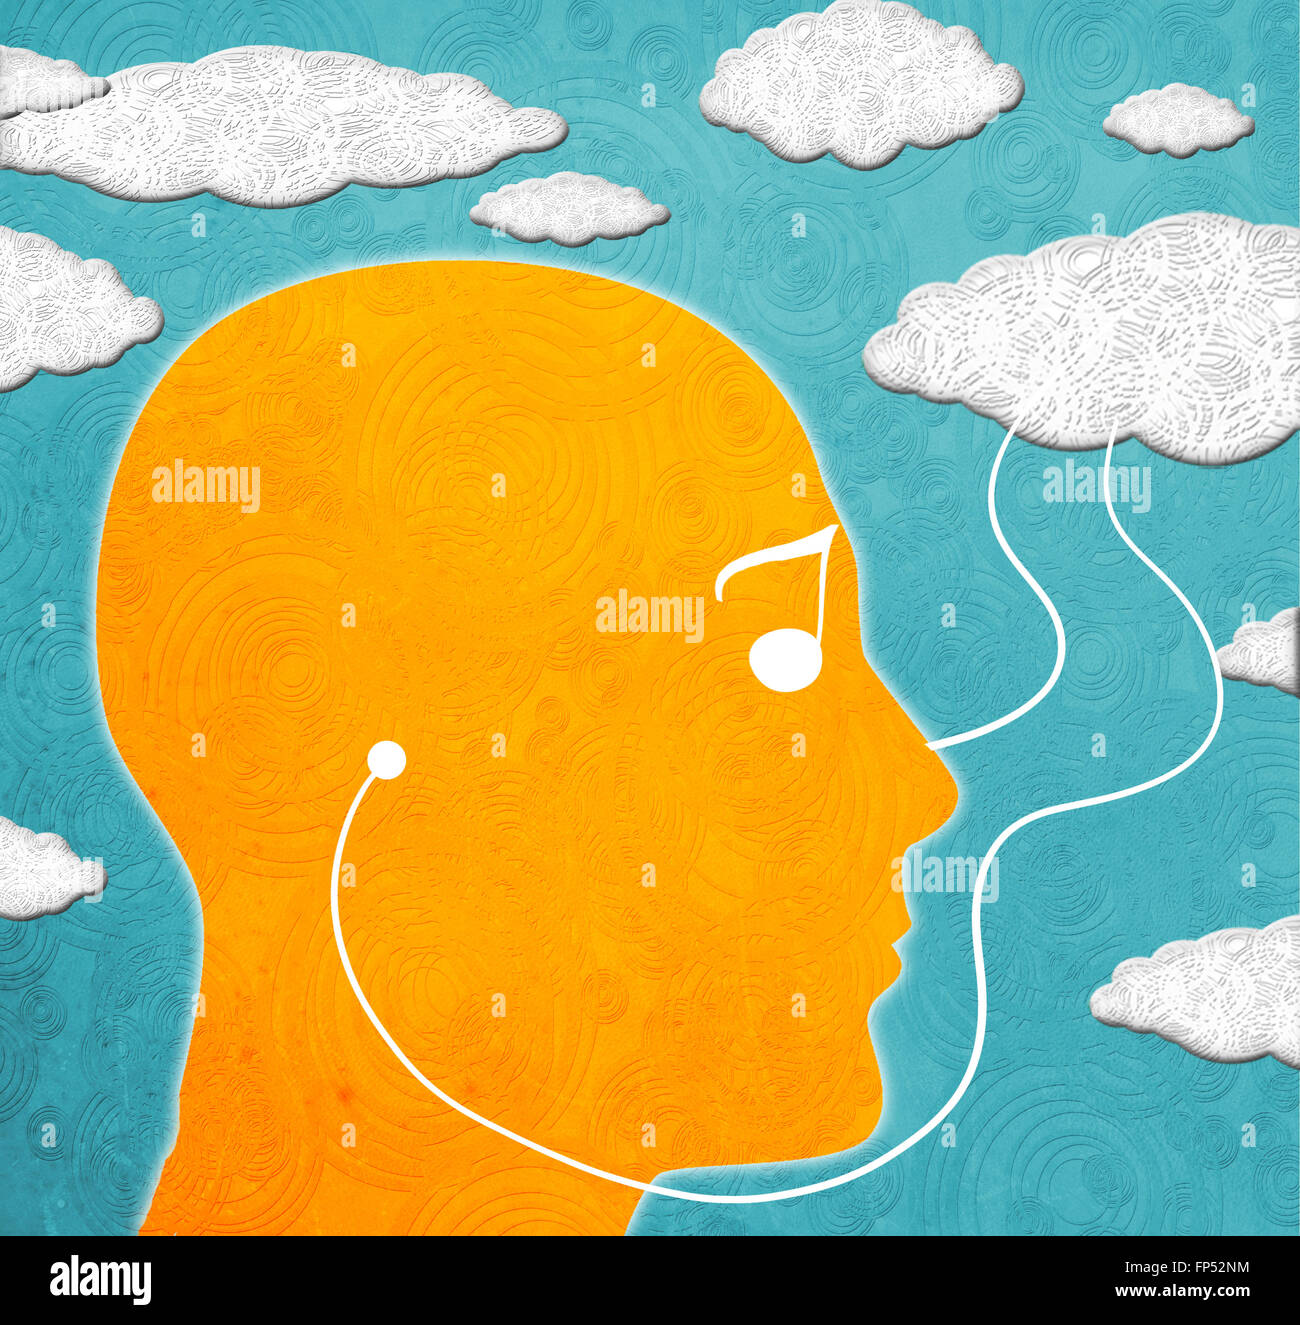 cloud computing music digital illustration - Stock Image